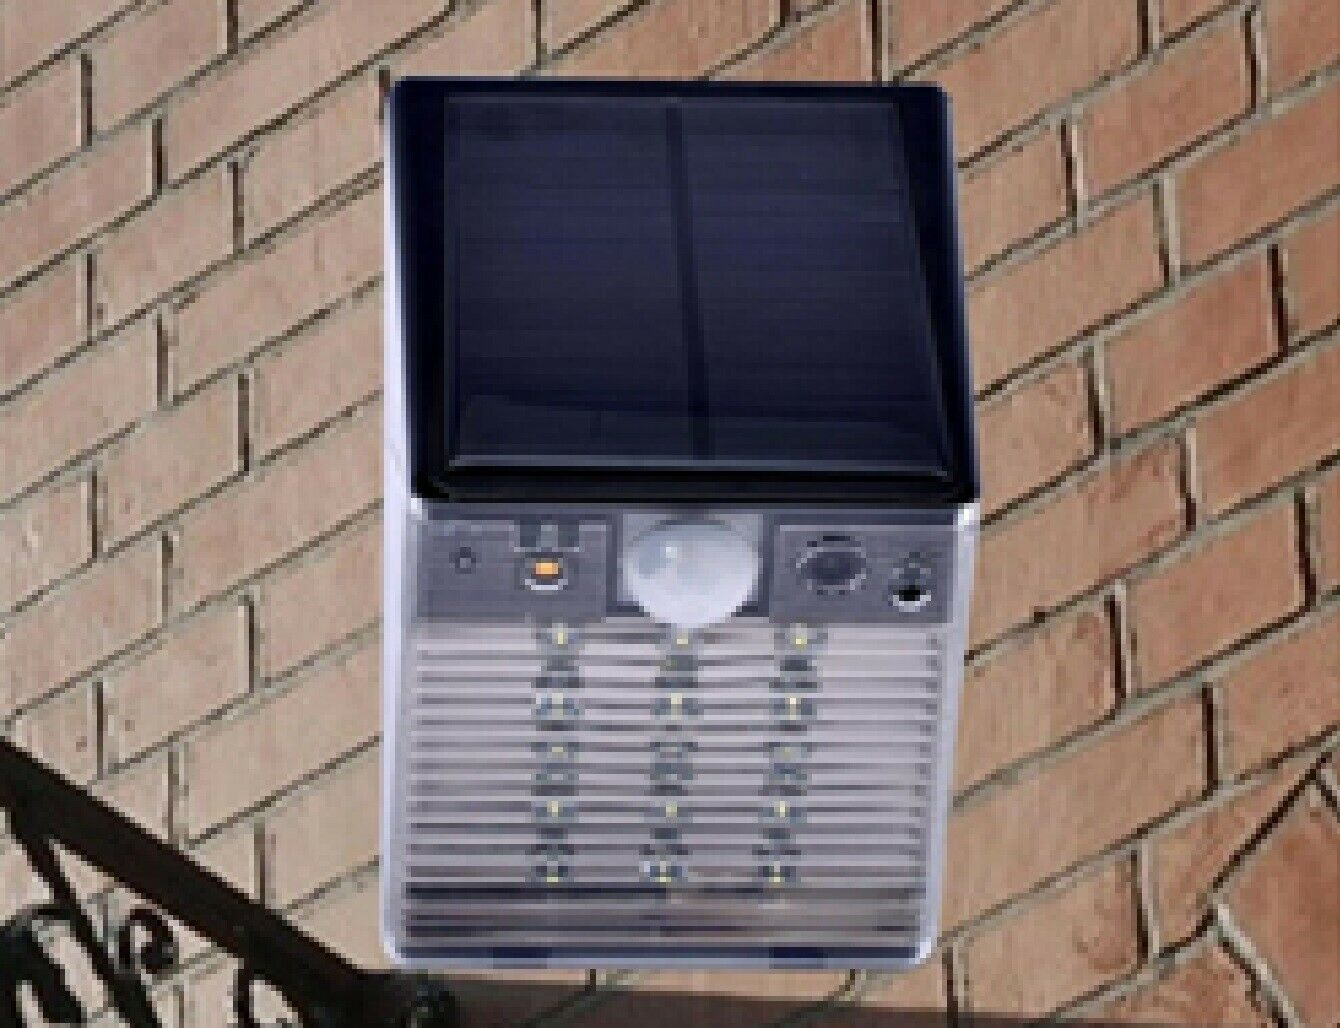 Waterproof Solar Motion Sensor LED Light with Security Camer